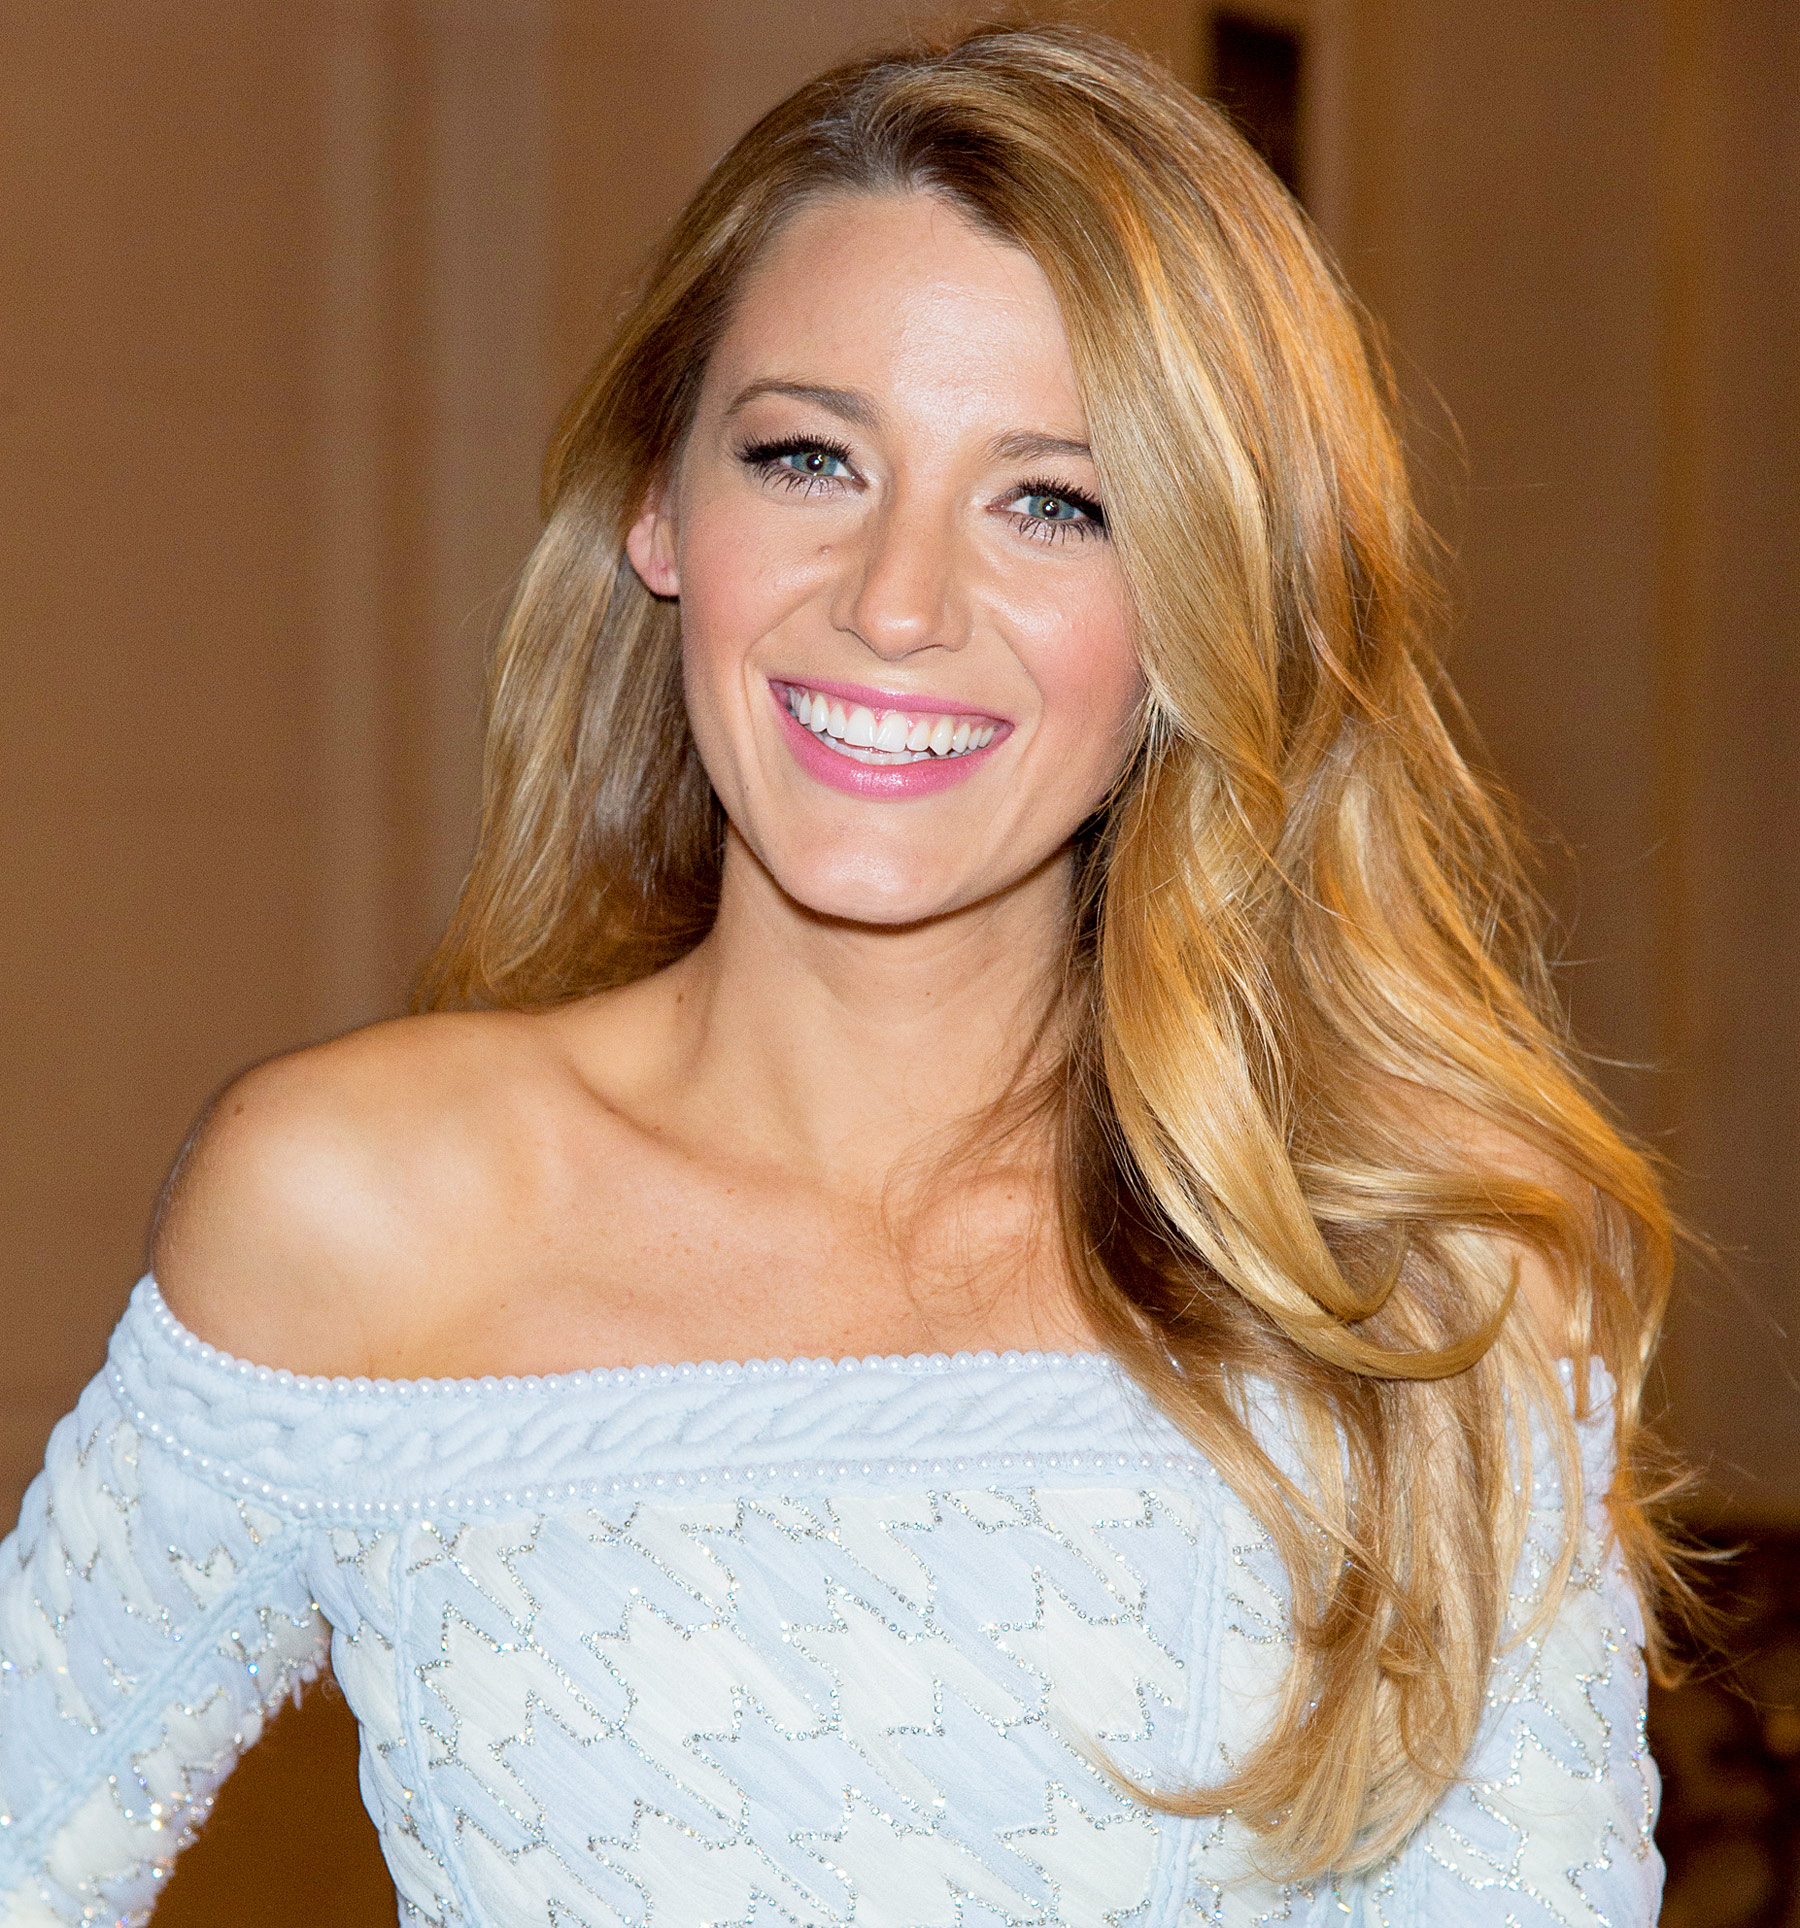 blake-lively-hobbies-religion-political-views